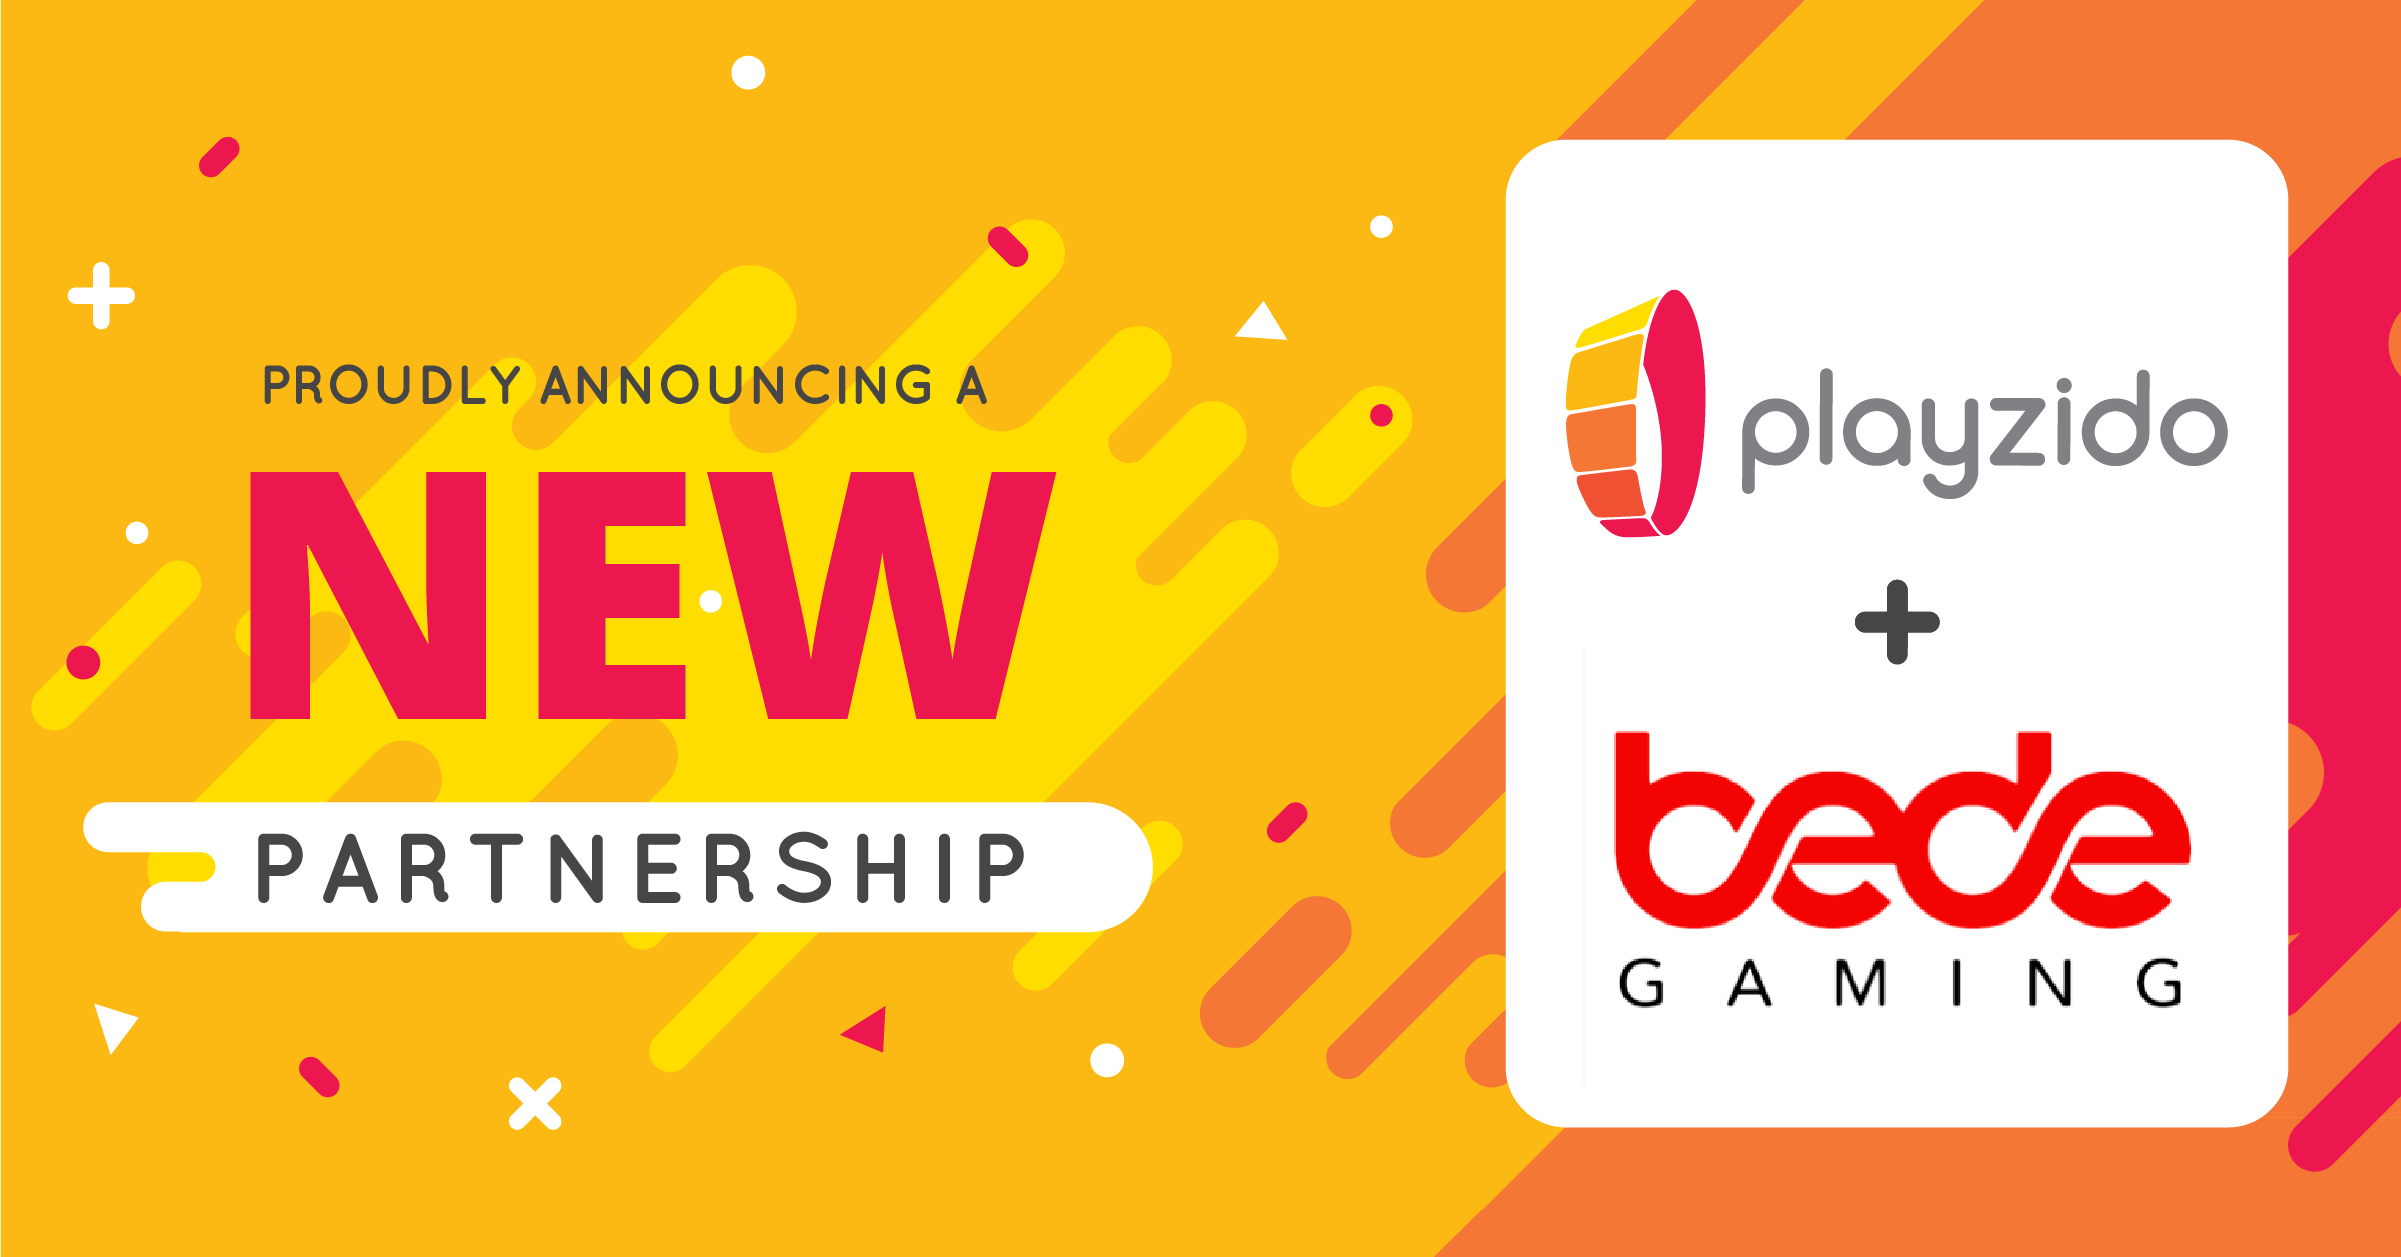 Playzido partners with Bede